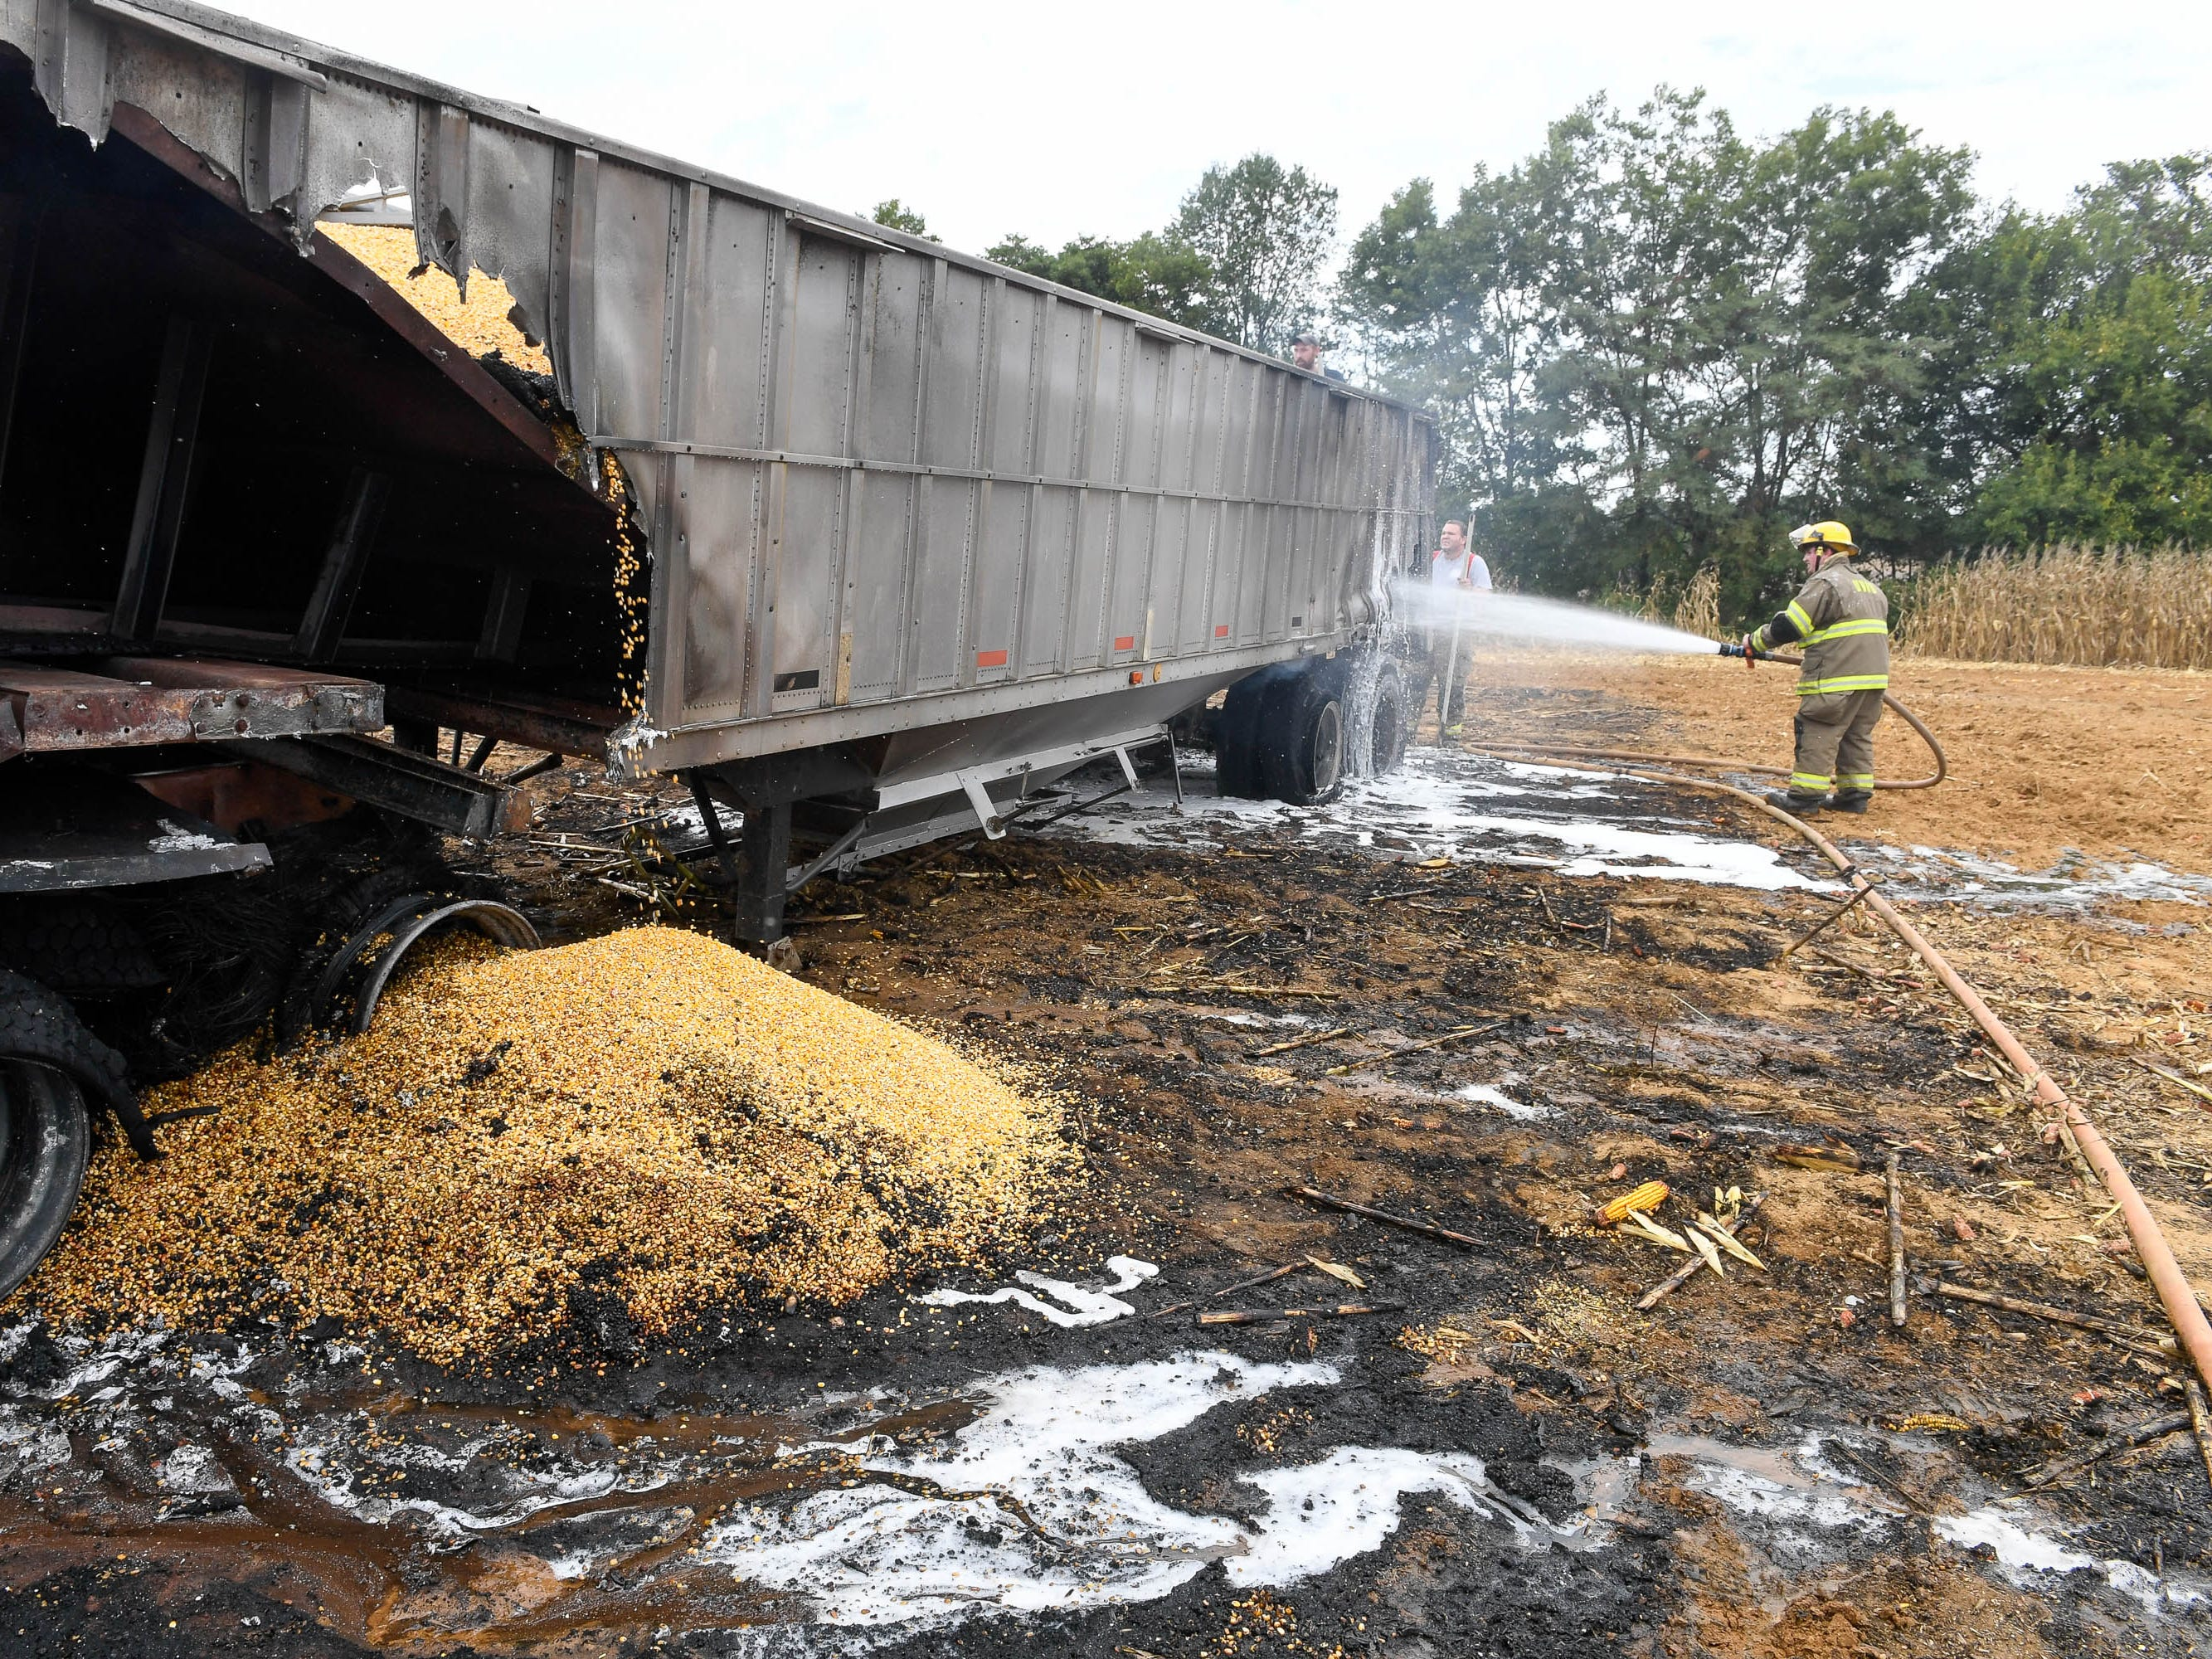 Volunteer firemen hose down hot spots after two semi-tractor trailers caught fire while harvesting corn on the Dale Dixon farm on Trigg-Turner Road in Henderson County Friday. September 21, 2018.